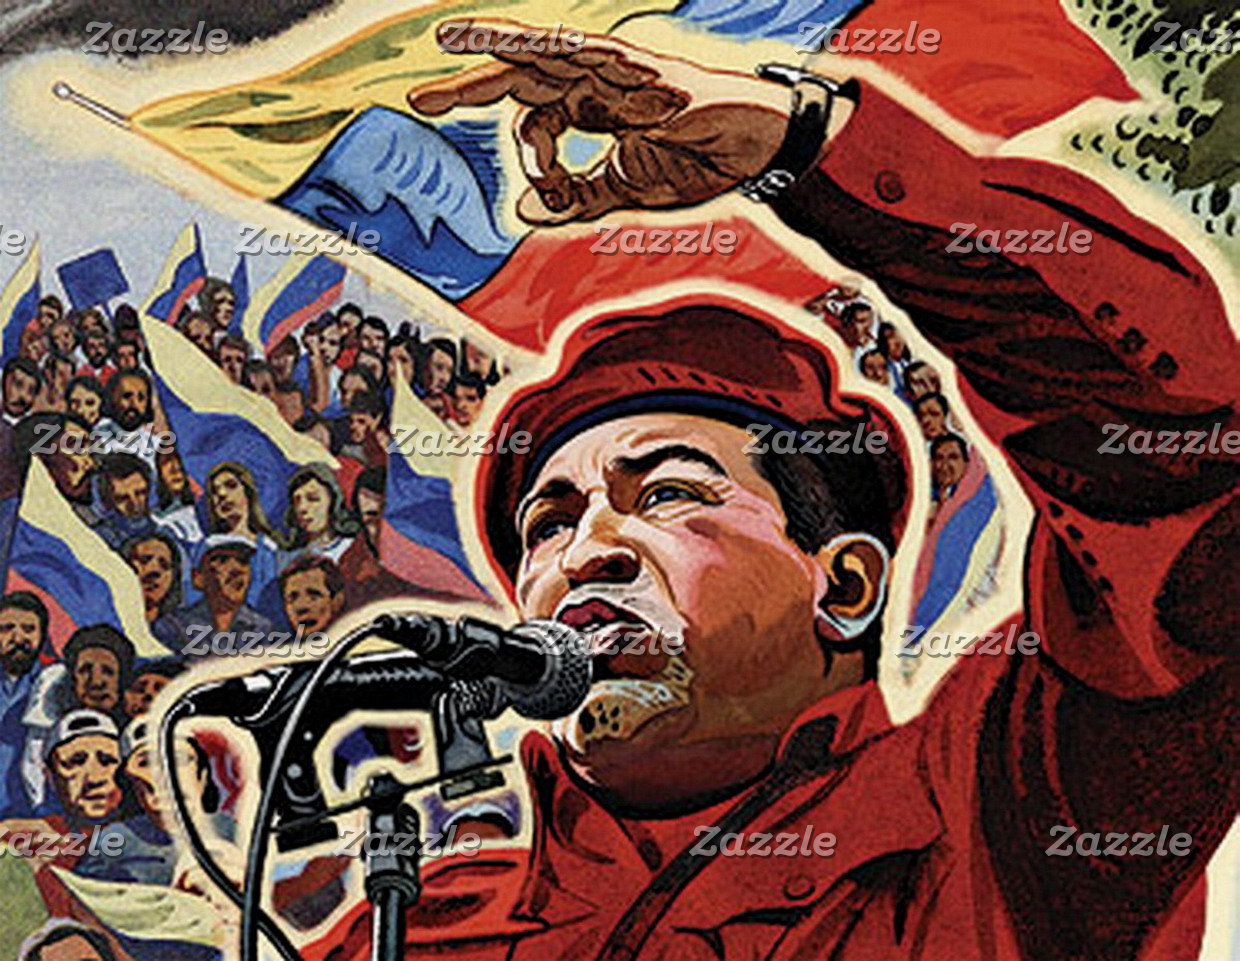 Hugo Chavez - Cartoon Revolution style